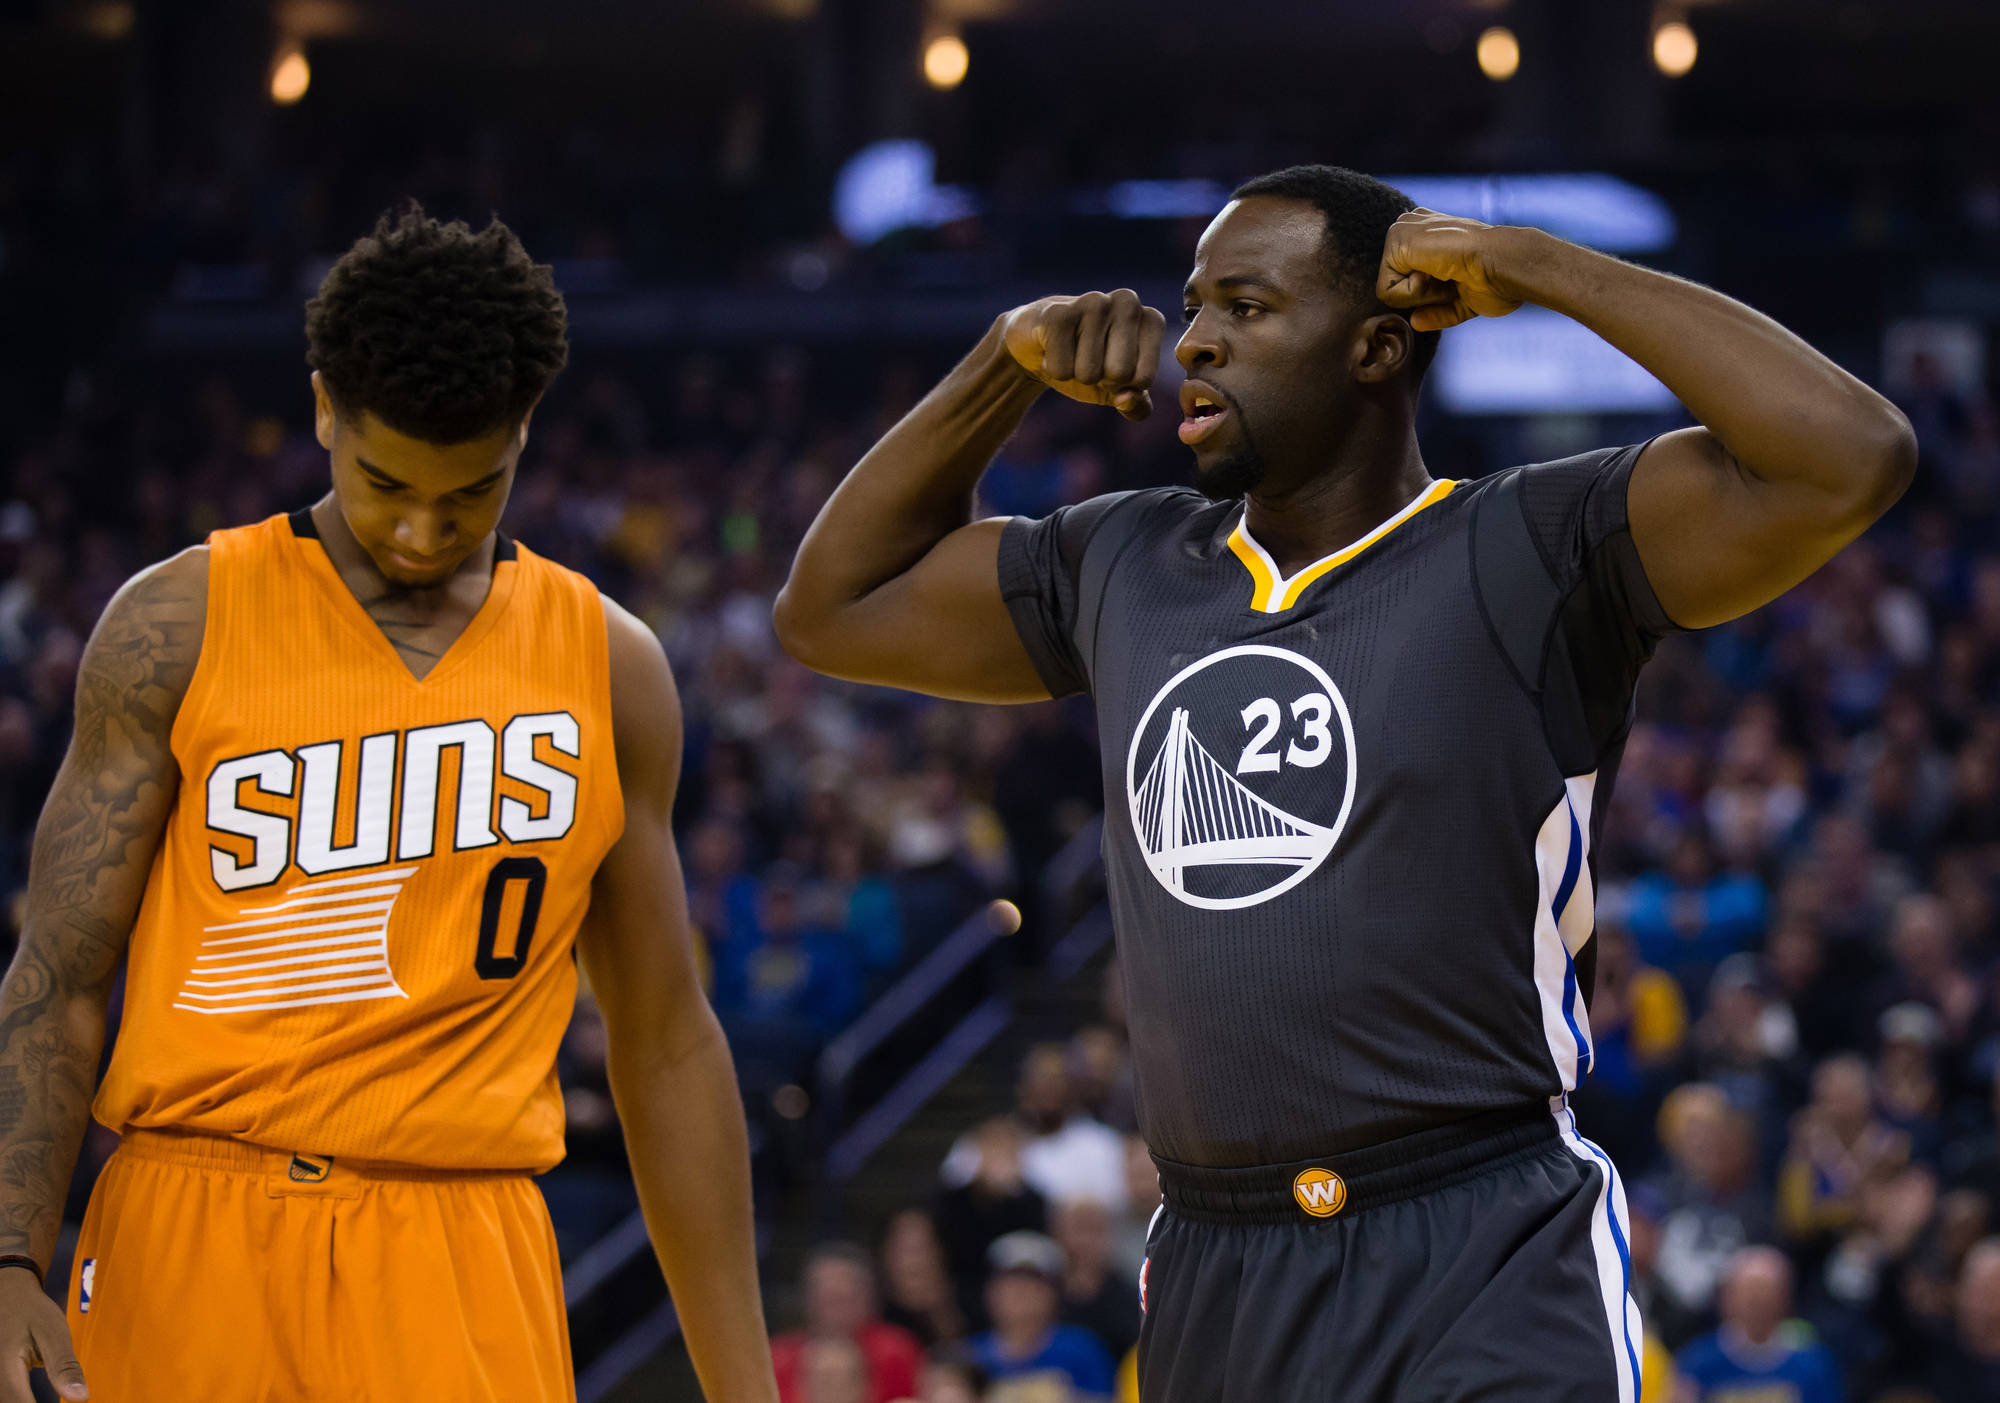 NBA: Why Draymond Green needs to be suspended